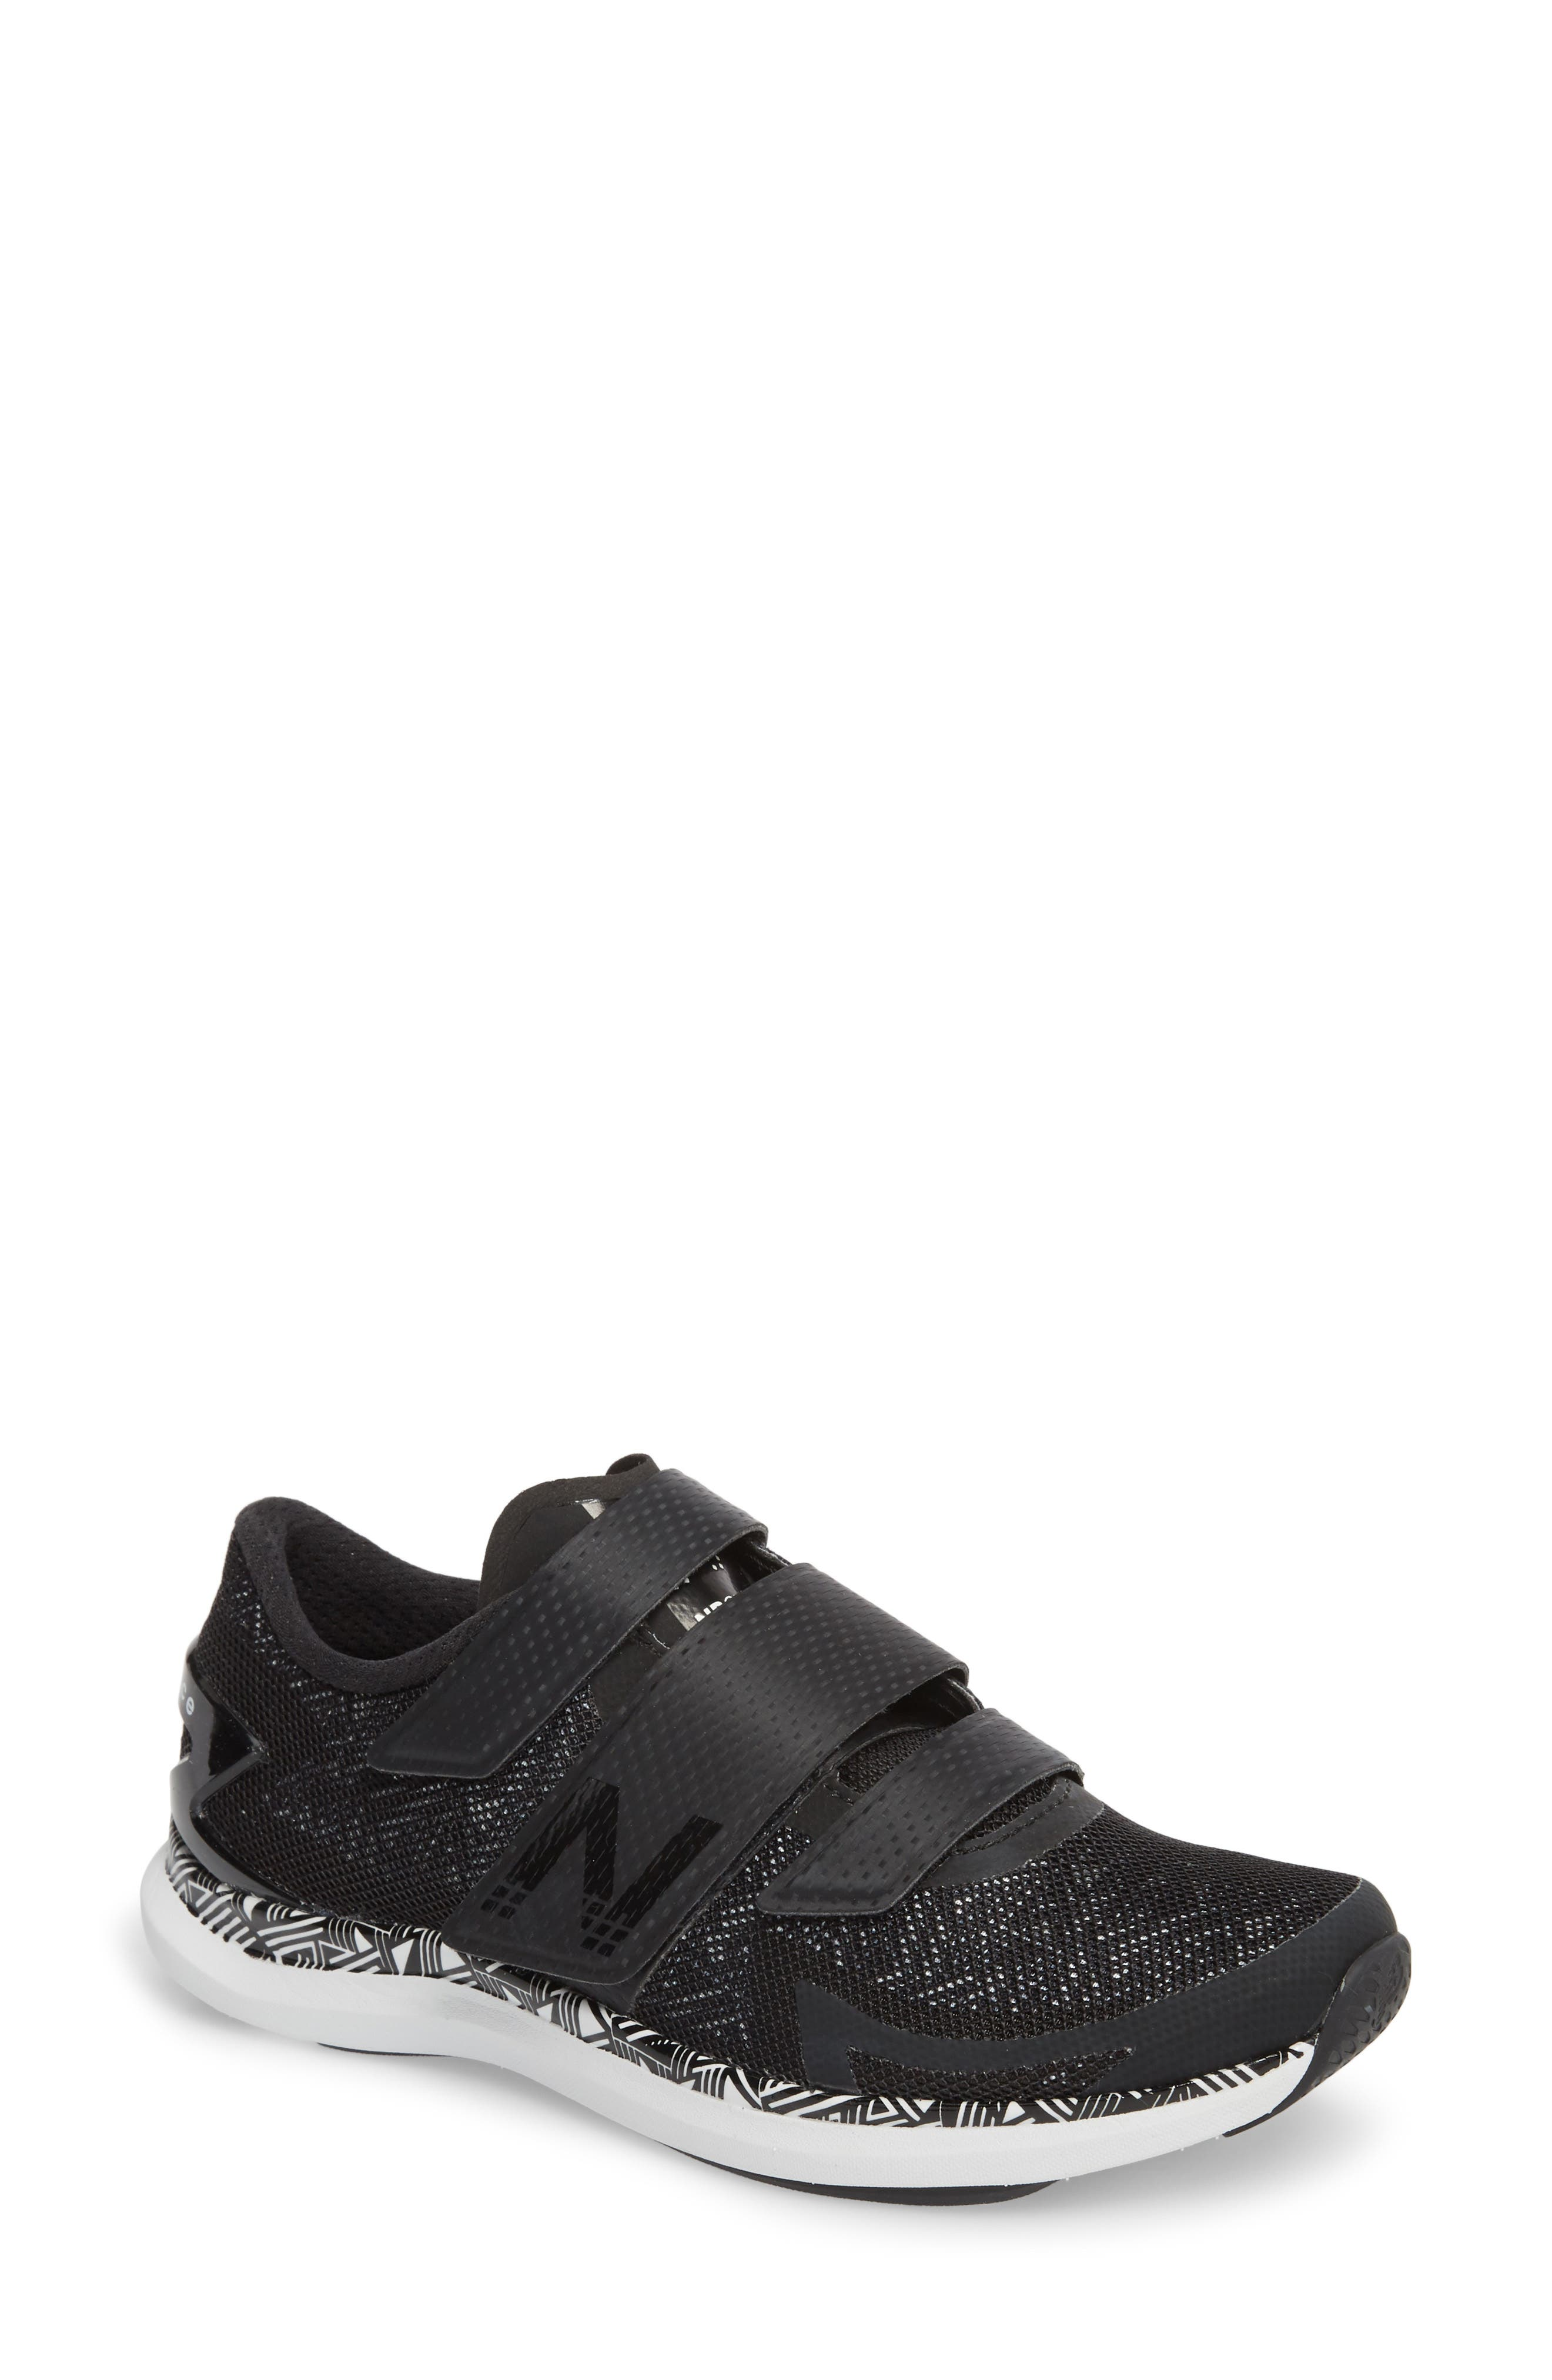 Spin 09 Cycling Shoe, Main, color, BLACK/ WHITE